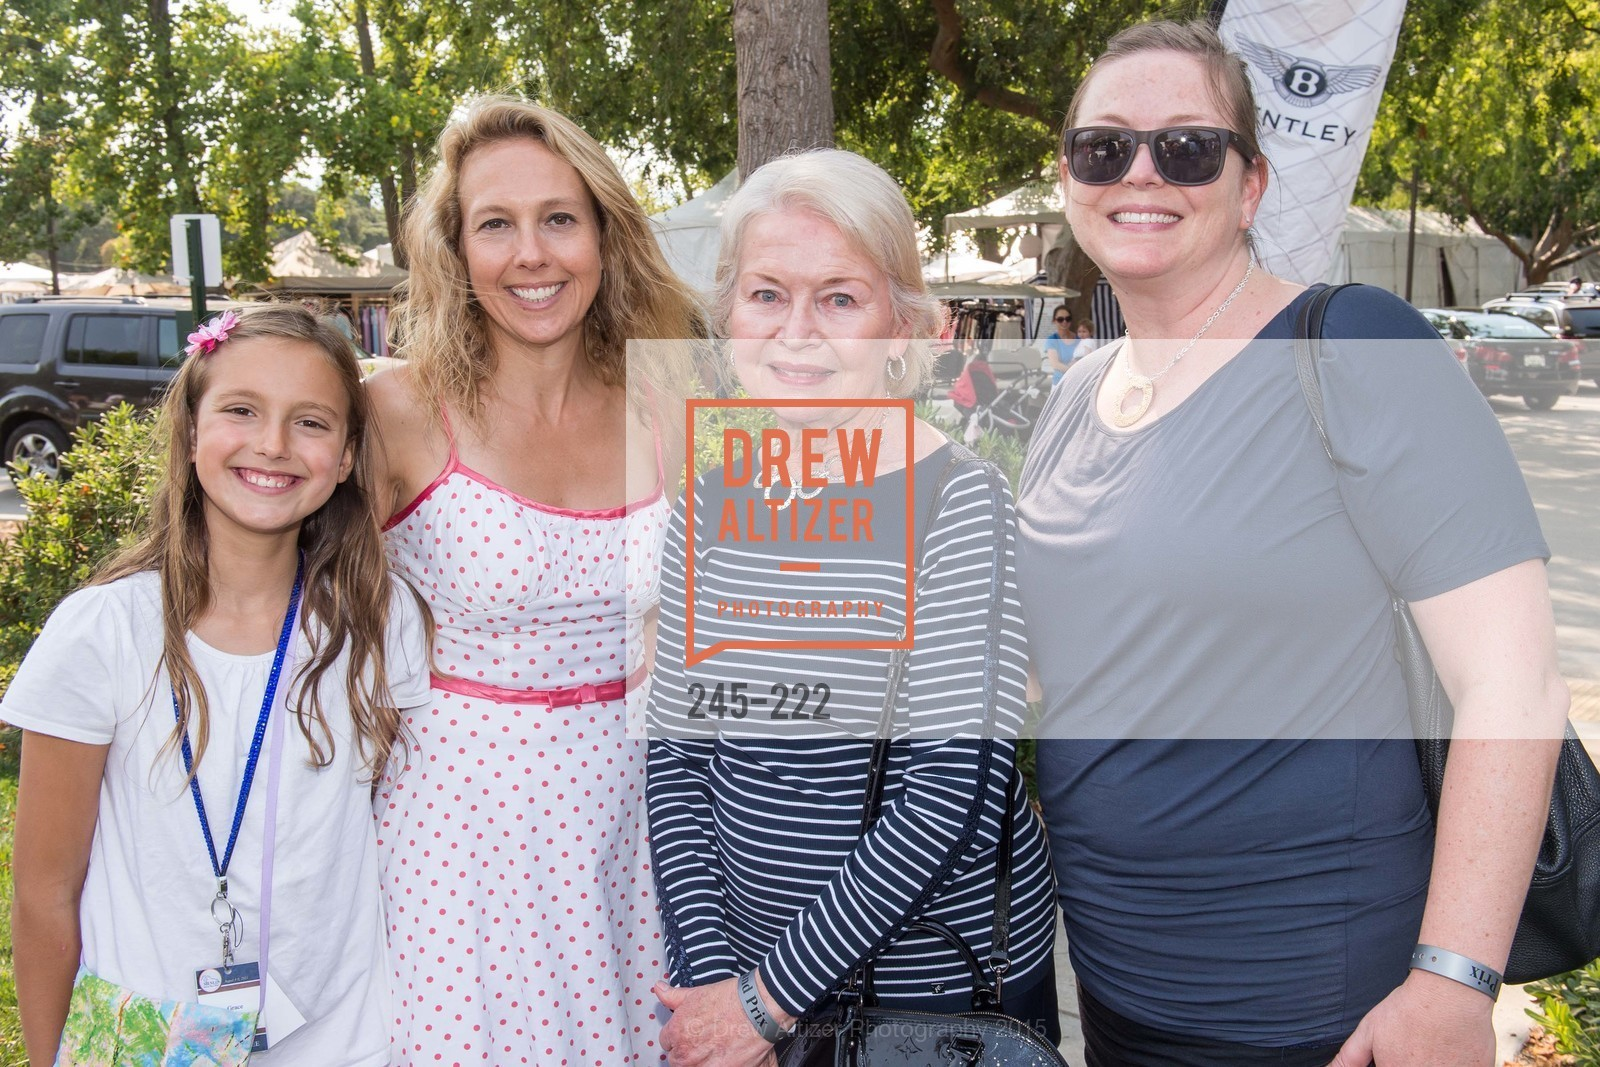 Grace Szalay, Juno Szalay, Pam Brandin, Alexandra Roach, Bentley Tailgate Party Benefiting the Menlo Charity Horse Show, Menlo Circus Club, August 8th, 2015,Drew Altizer, Drew Altizer Photography, full-service event agency, private events, San Francisco photographer, photographer California